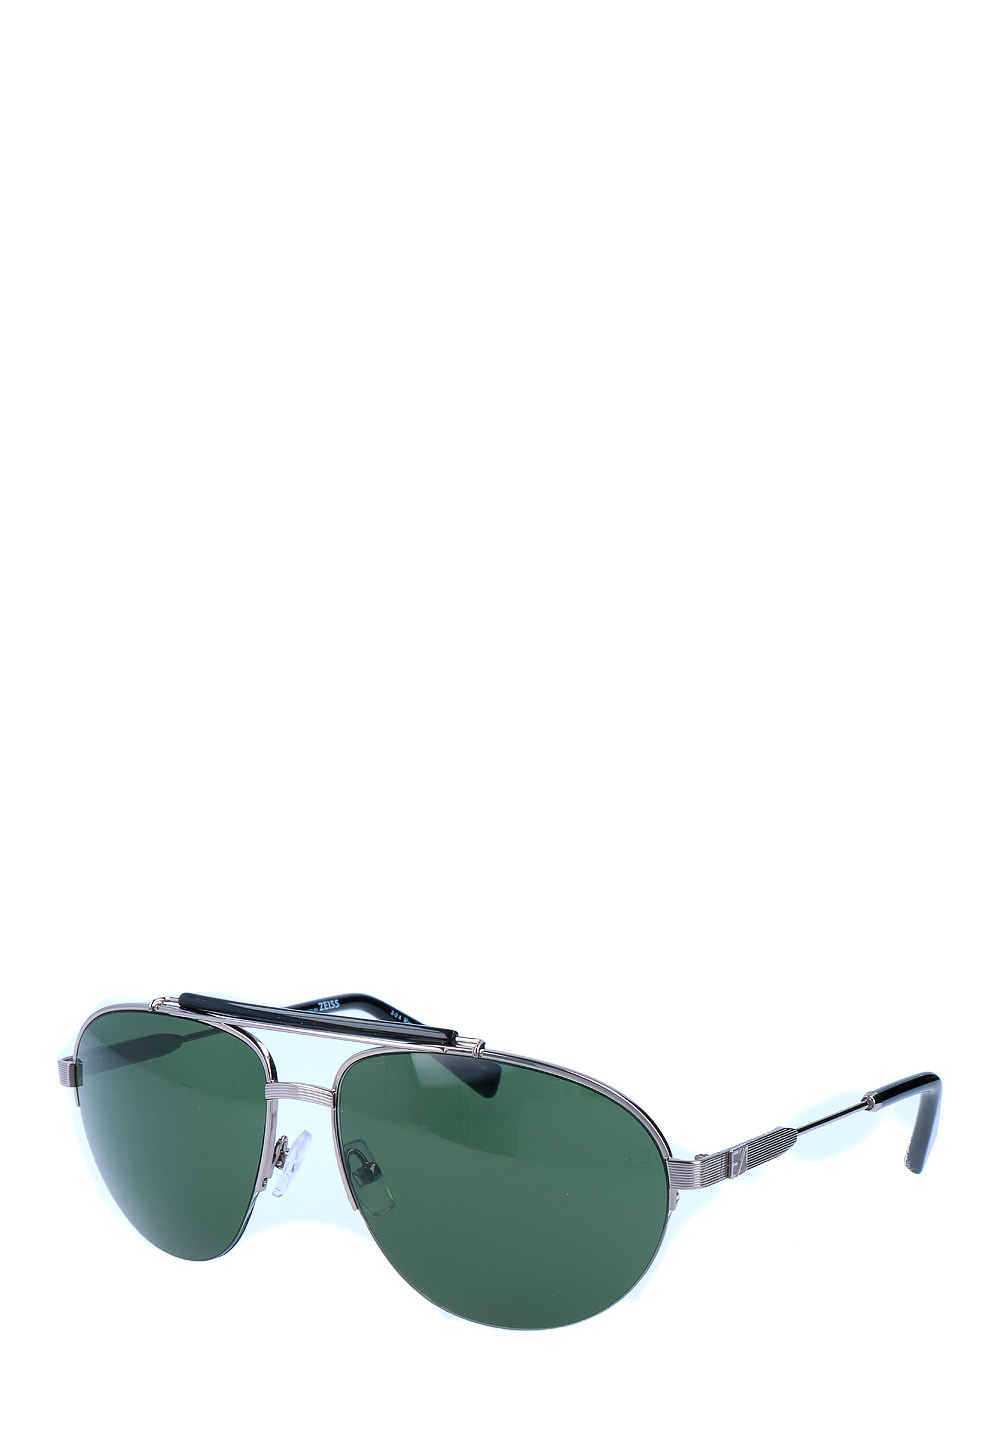 Ermenegildo Sonnenbrille Ez0007, Uv400, shiny light ruthenium bunt